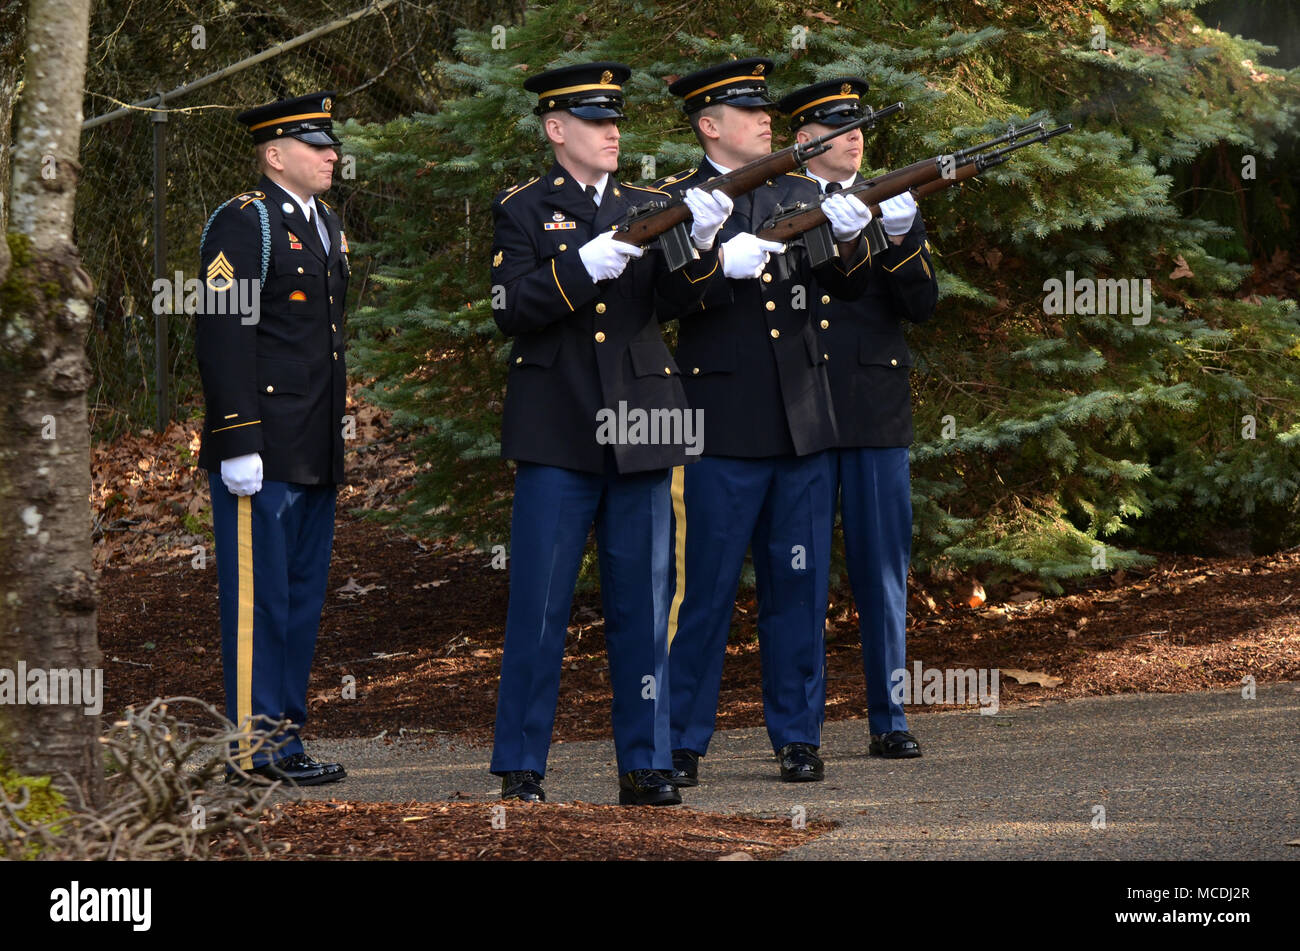 A firing party team of Oregon Army National Guard Soldiers consisting of SPC Michael Banks, SGT Everett Mayers and SPC Isaac Yocum (left to right), listen to commands given by Staff Sgt. Joshua Flores (far left) while supporting a Navy funeral at Willamette National Cemetery, Portland, Ore., Feb. 7, 2018.  (U.S. Air National Guard photo by Master Sgt. John Hughel, 142nd Fighter Wing Public Affairs) - Stock Image